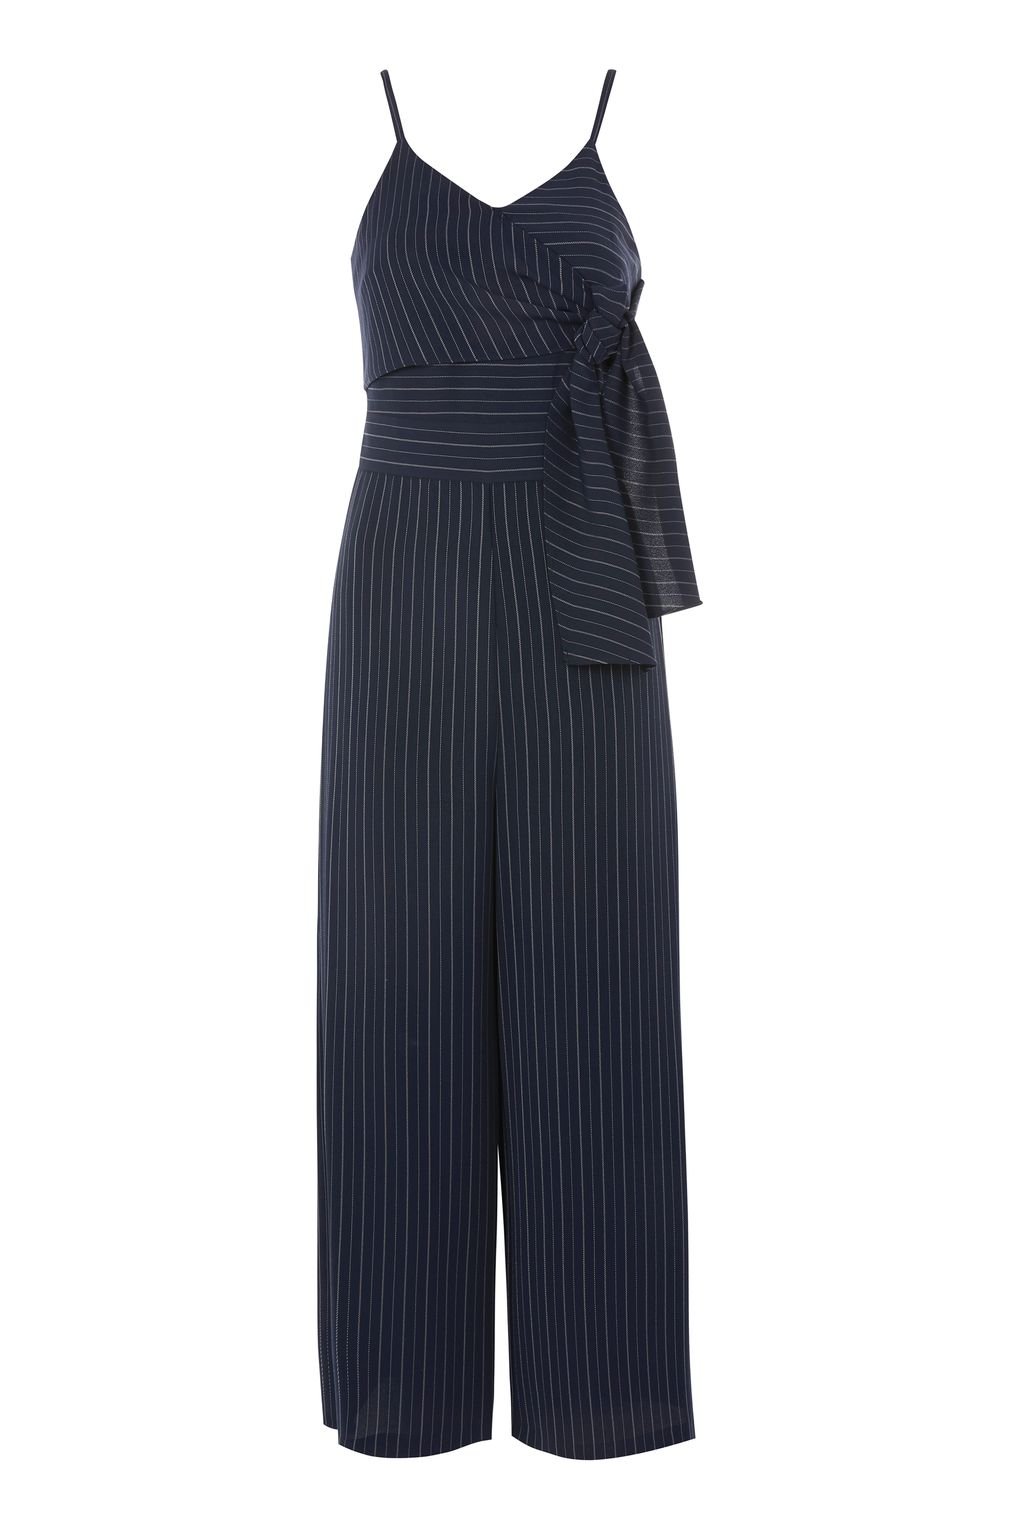 topshop - fashion, How to update your workwear wardrobe Otegha Uwagba,